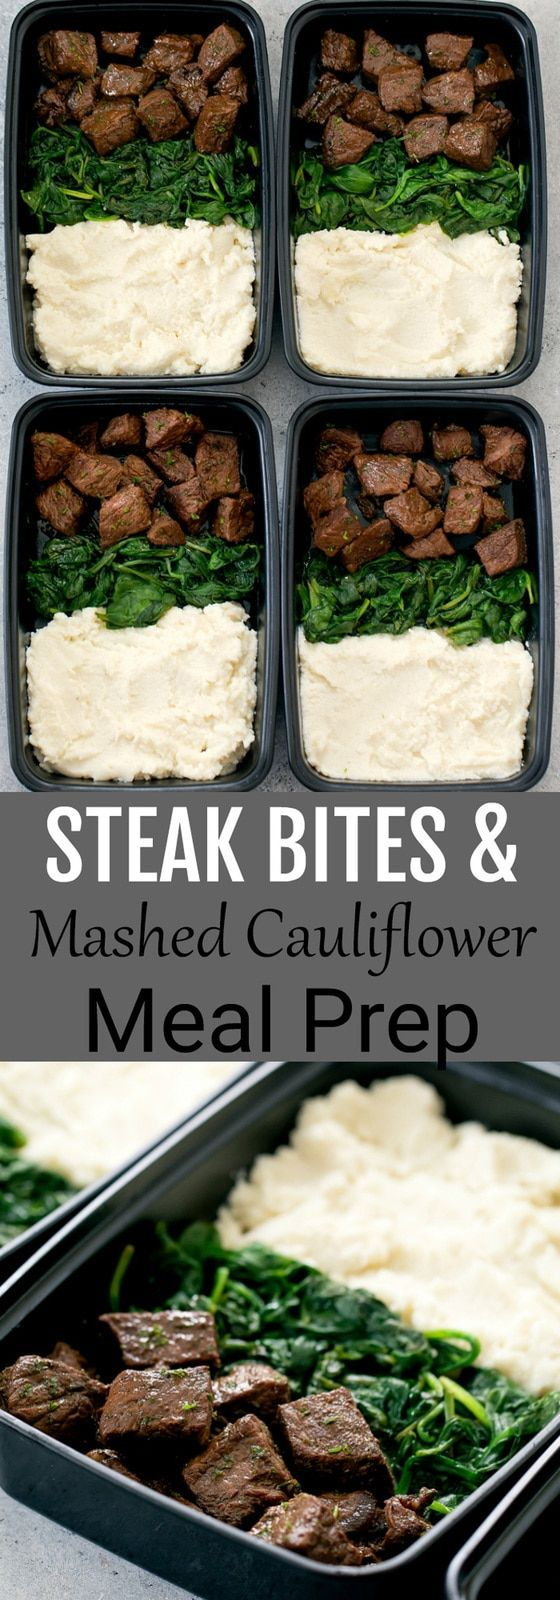 Steak Bites with Mashed Cauliflower Meal Prep